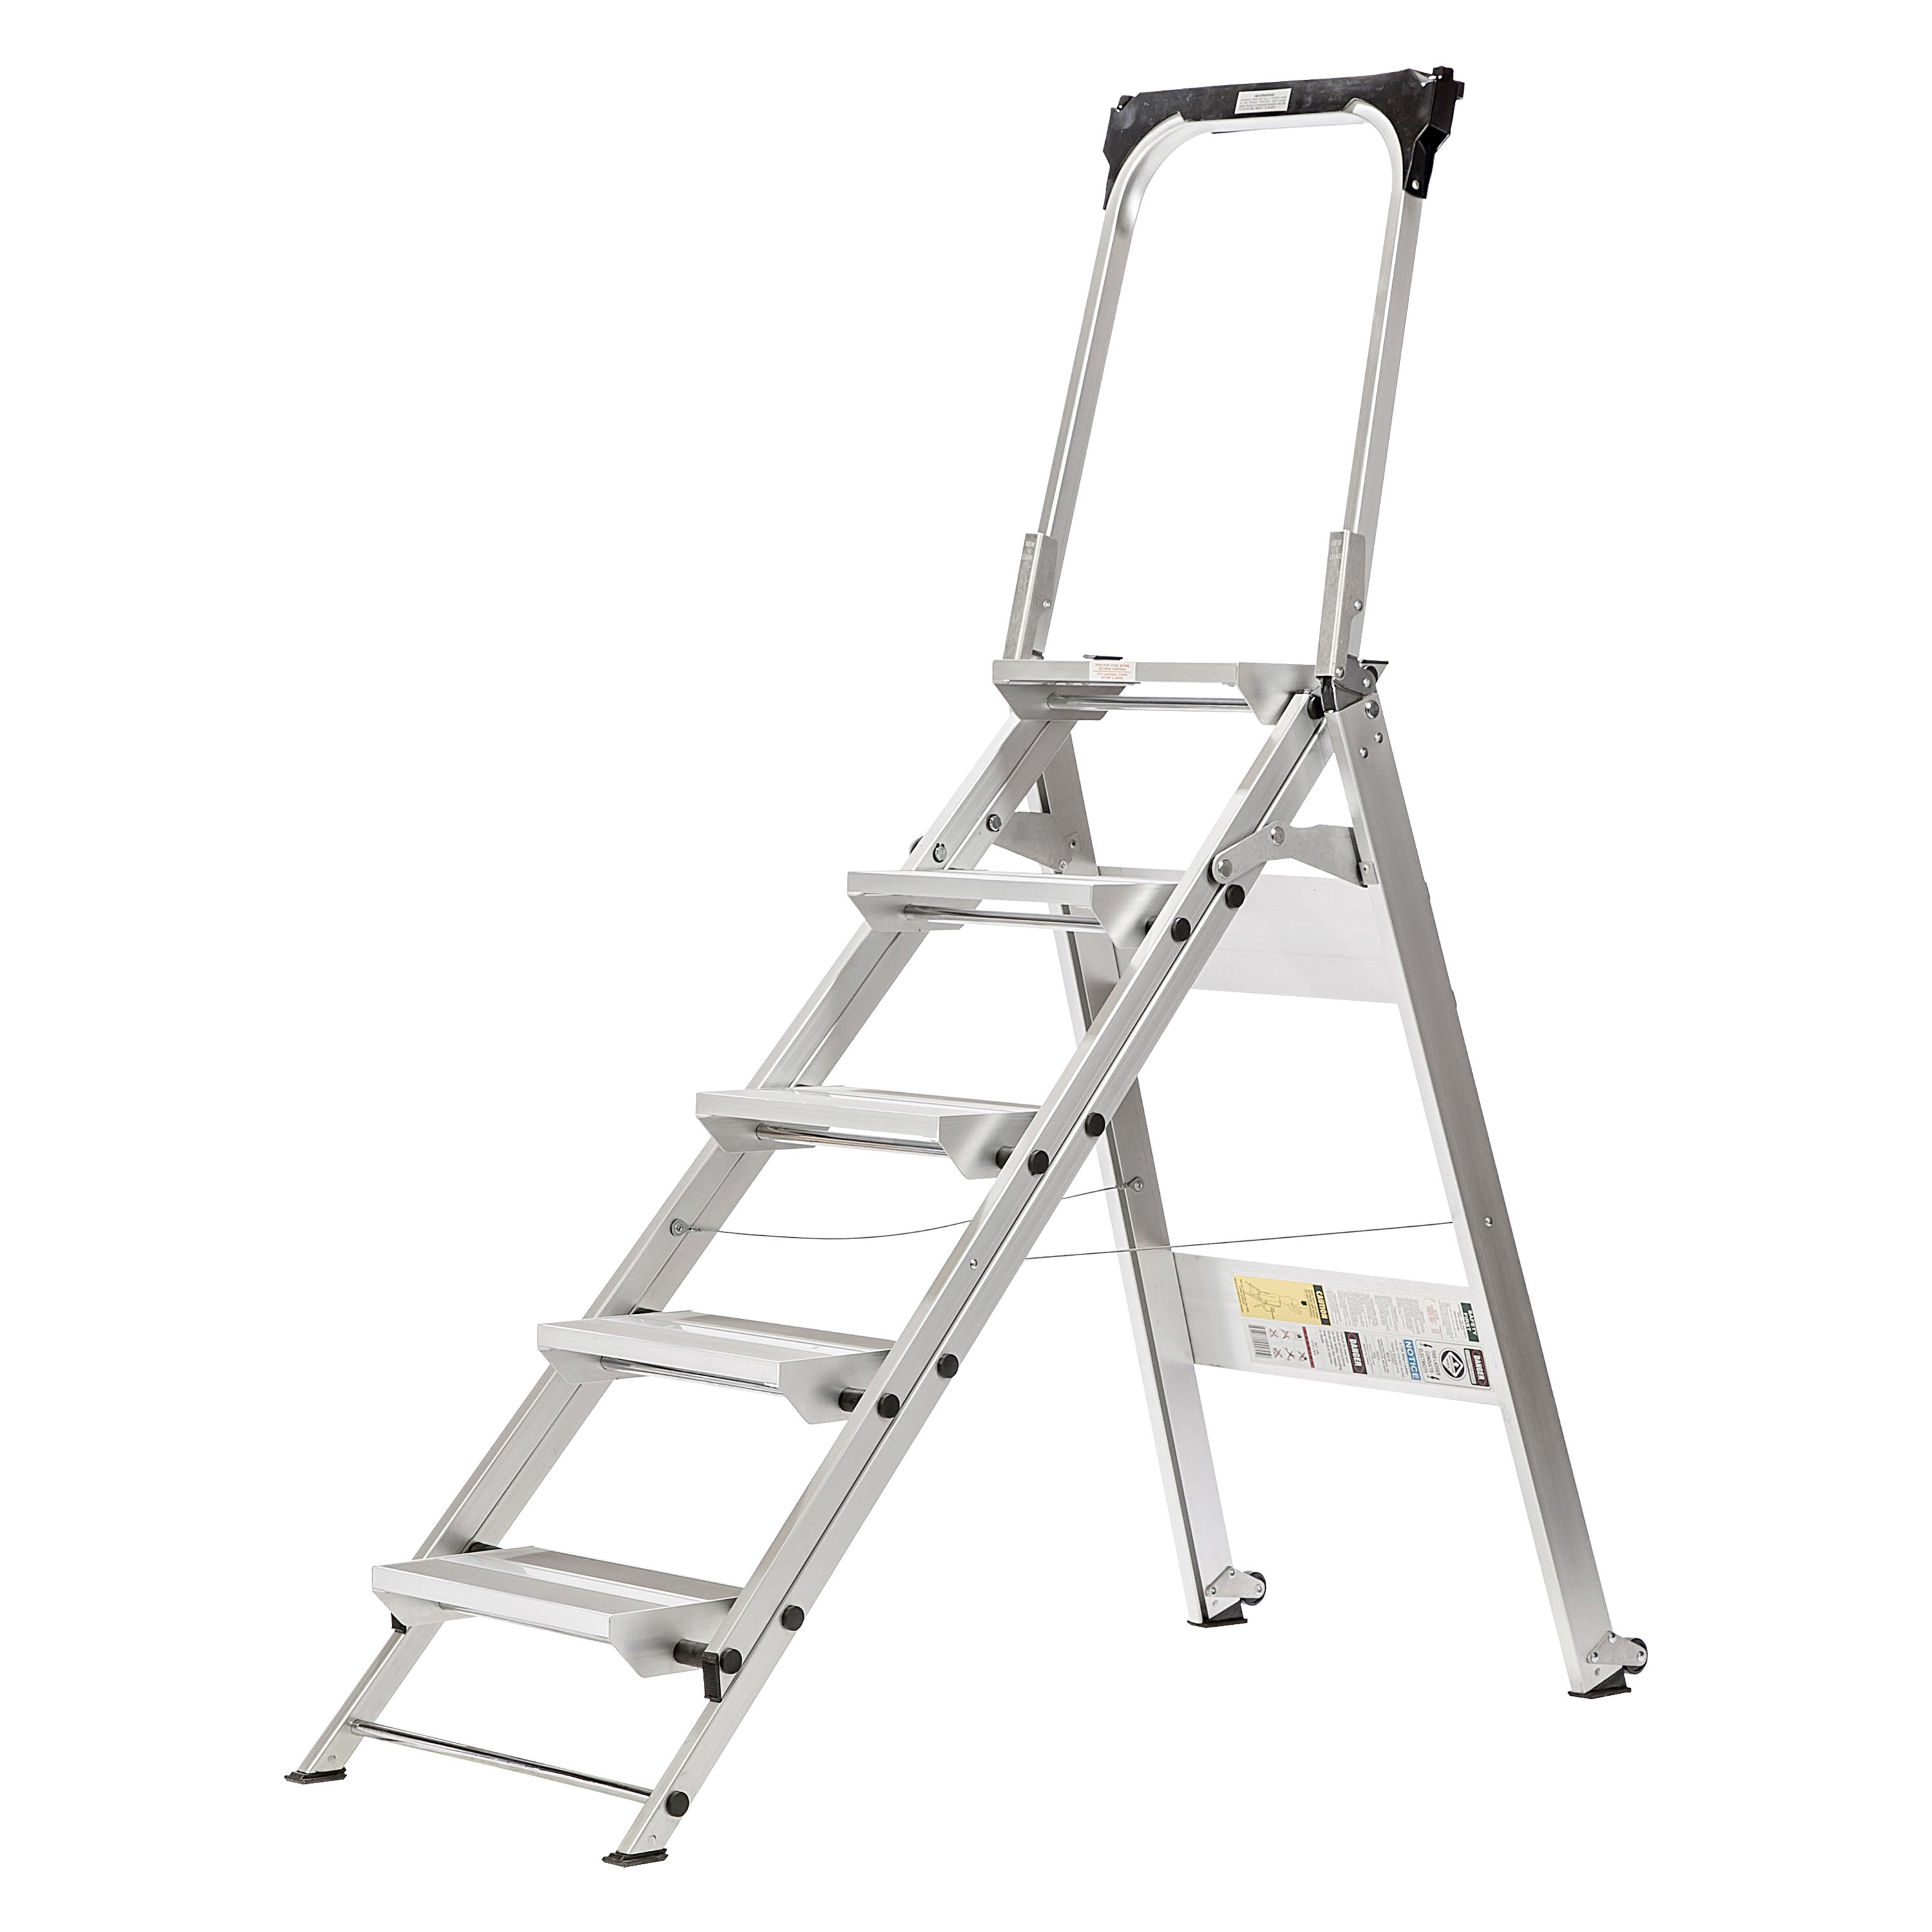 Xtend Climb 174 Wt5 Contractor Series Wt5 Step Stool